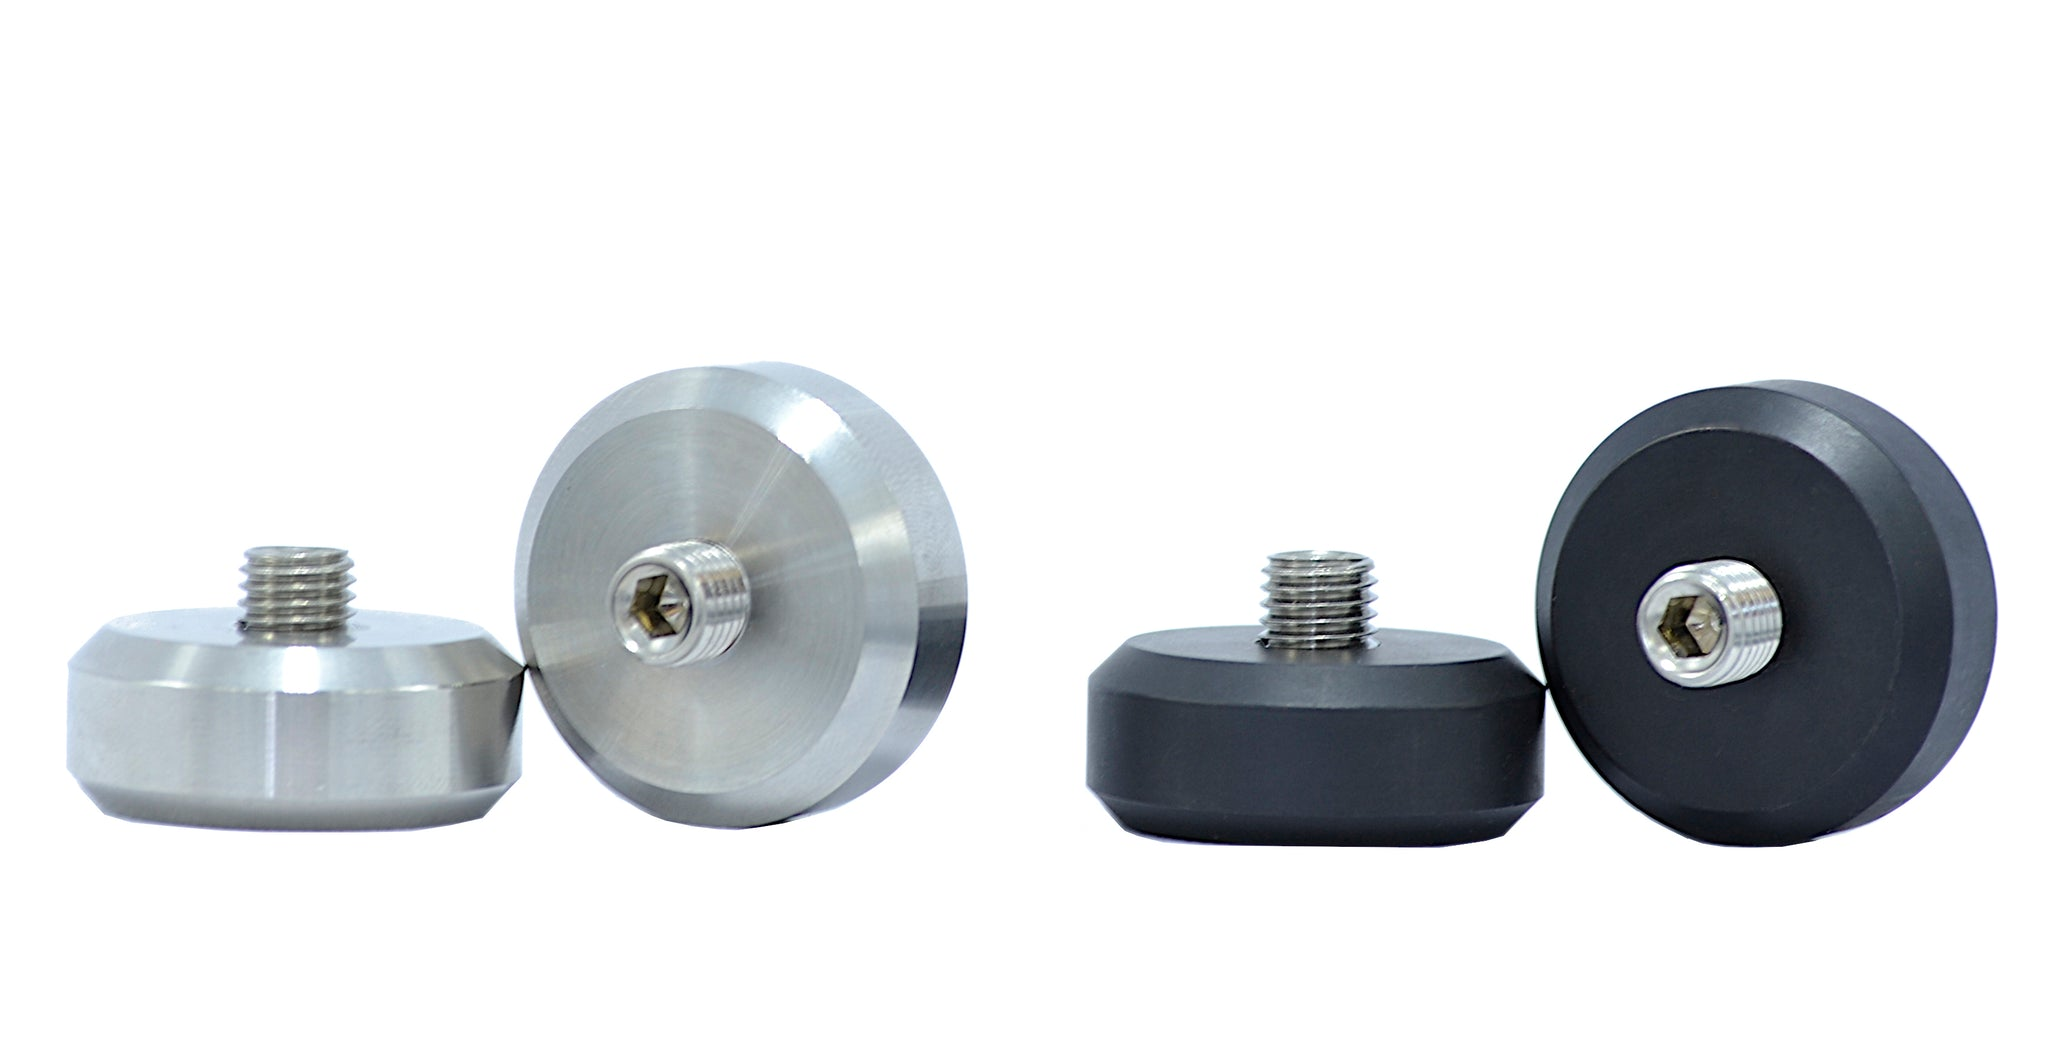 GRAY weights